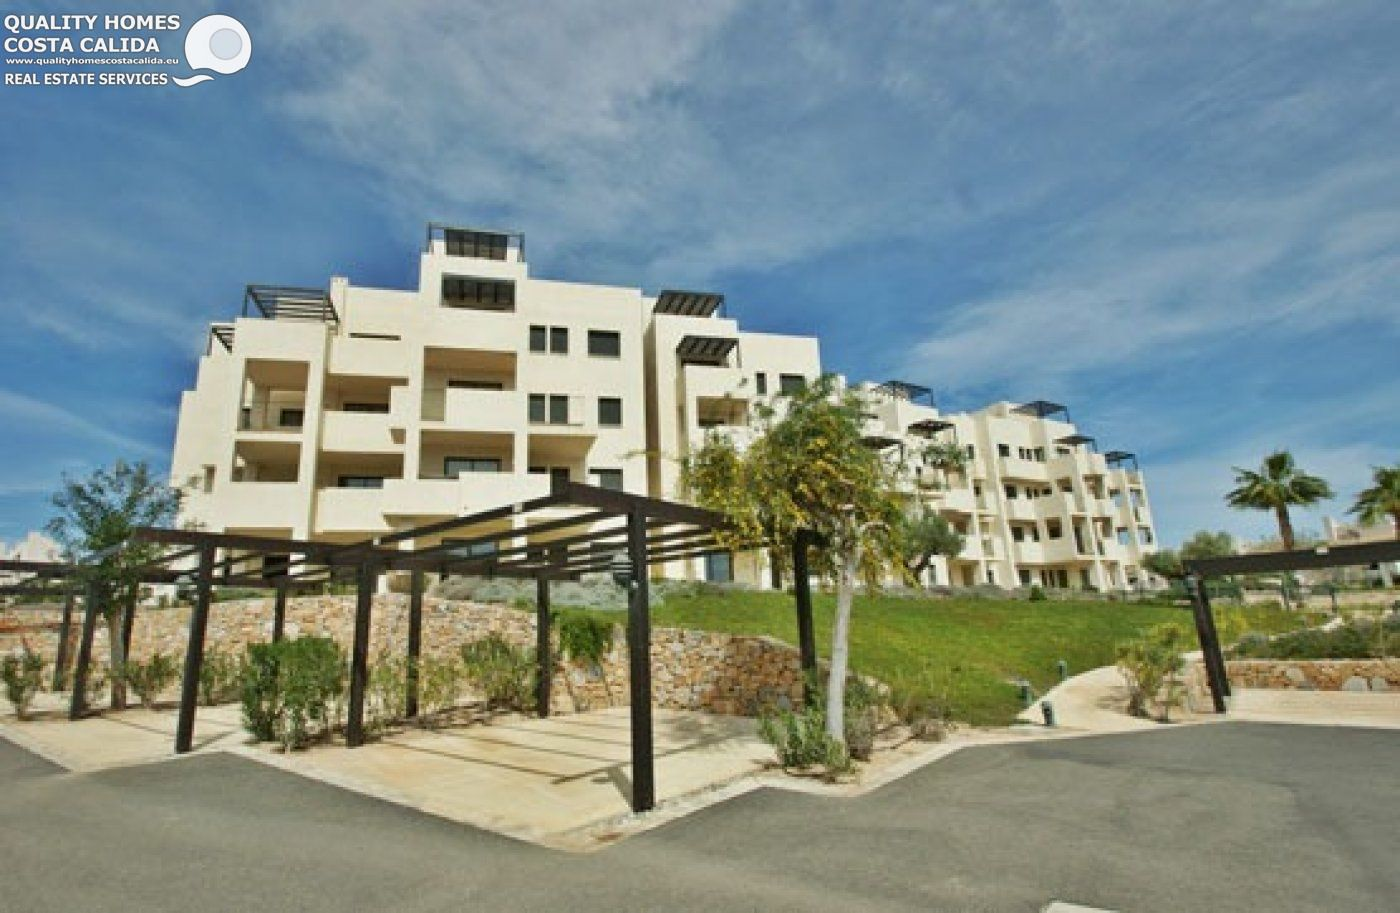 Gallery Image 1 of Maybe the best investment in the Murcia Region